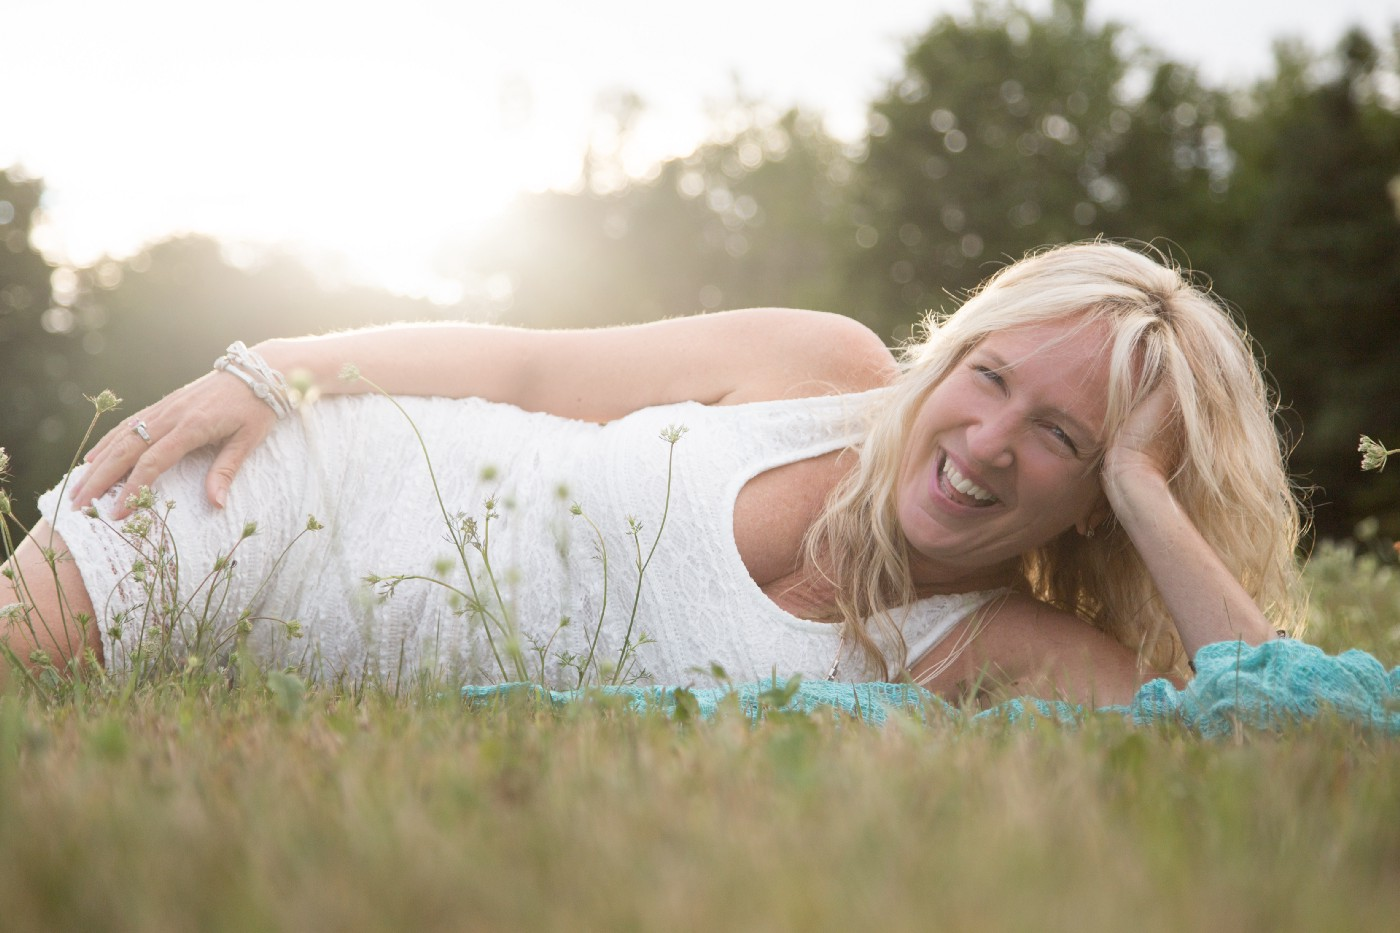 Liz Porter laying on her side in the grass in a white sleeveless dress laughing